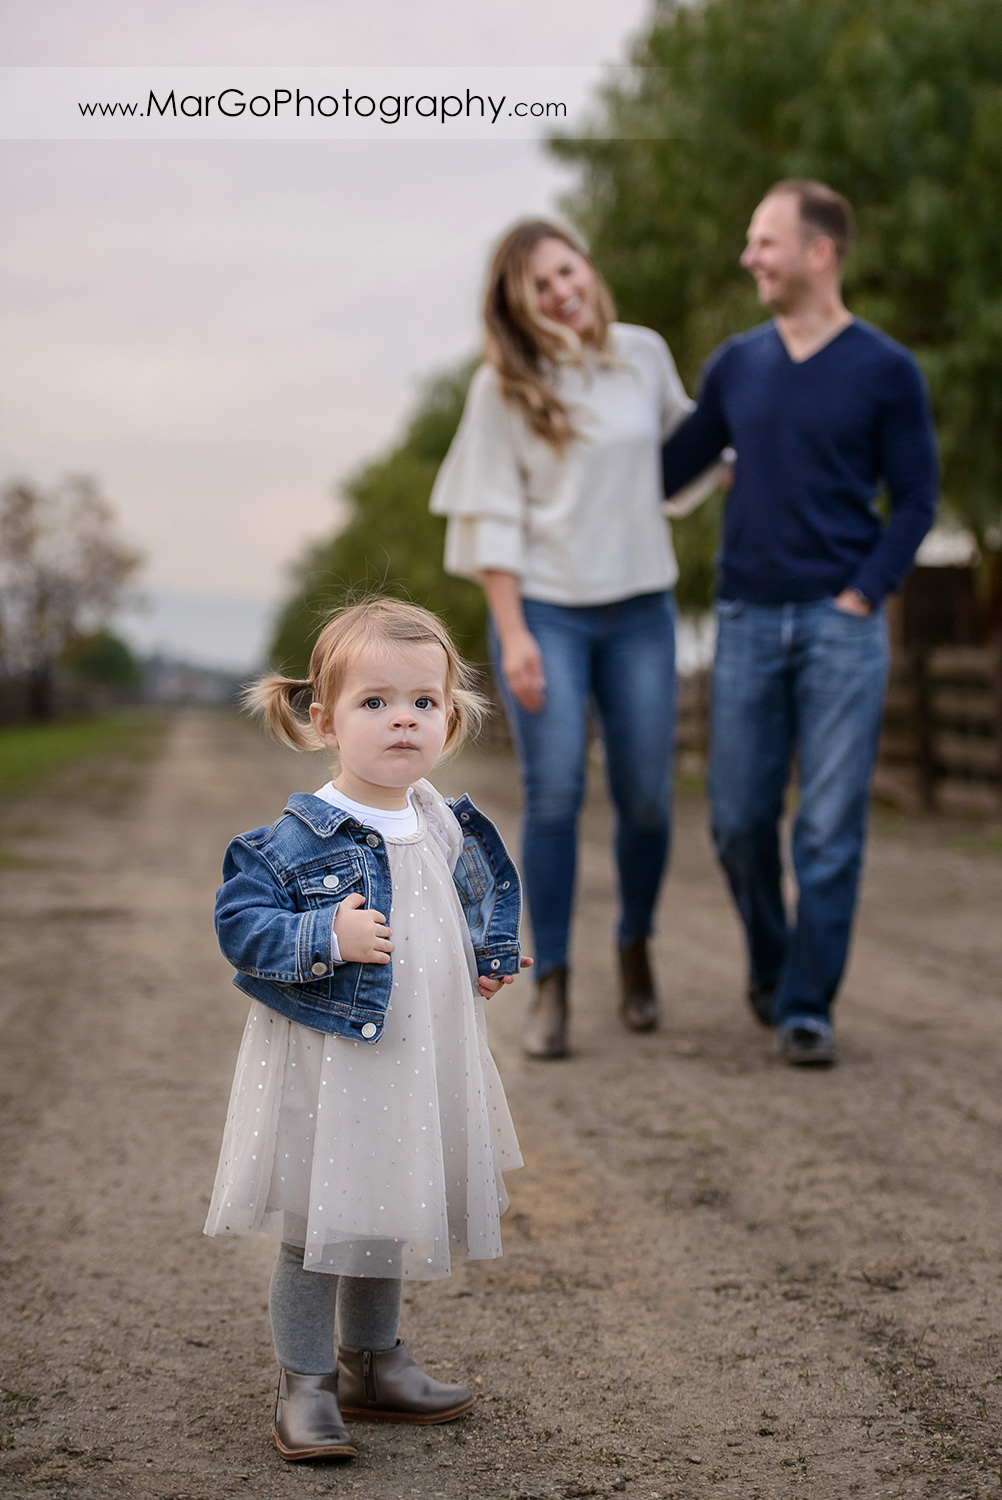 little girl in white dress and jeans jacket standing in front of mother in white sweater and jeans and father wearing navy blue sweater during family session at San Jose Martial Cottle Park